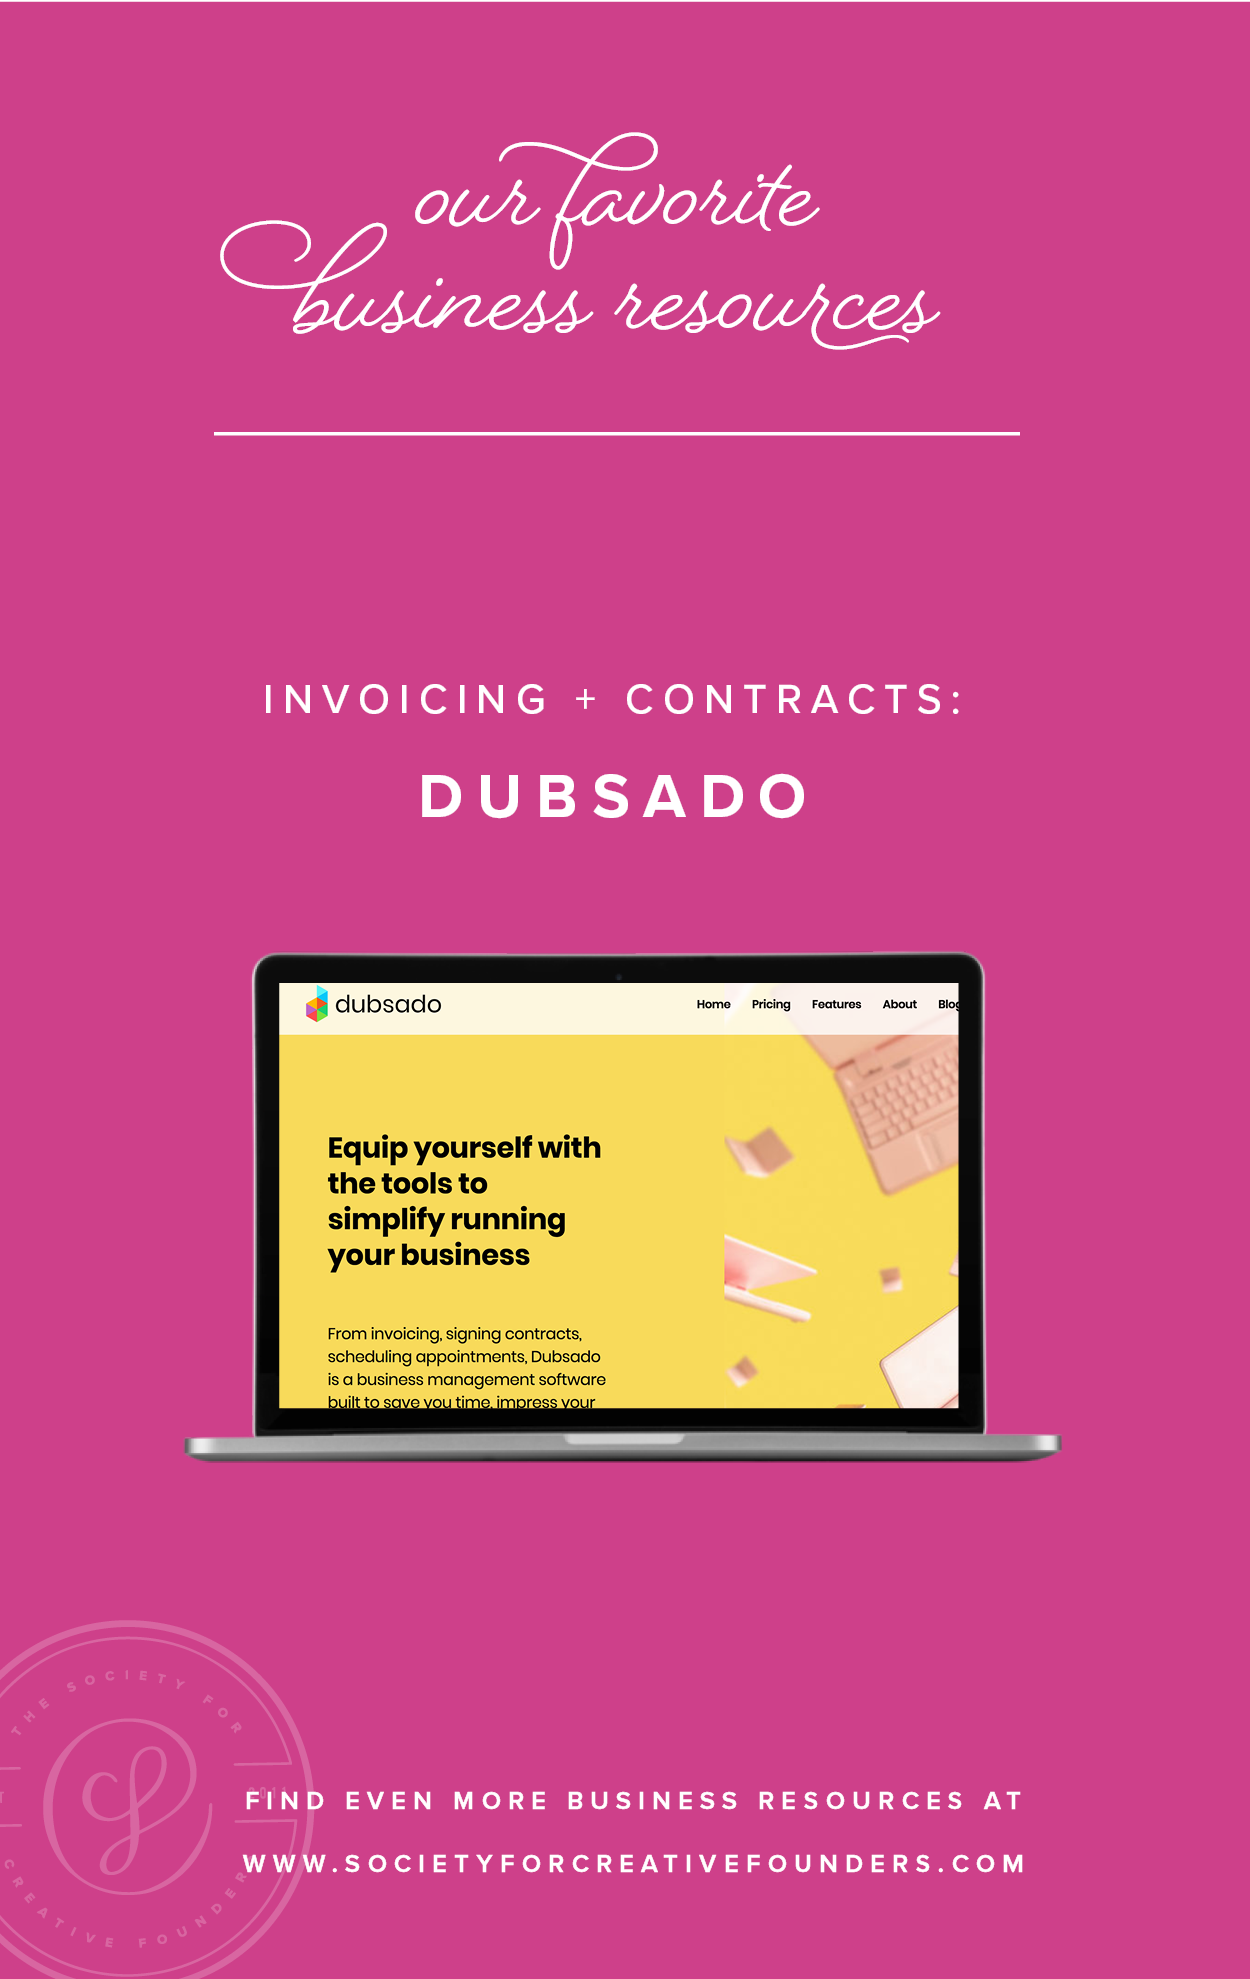 Dubsado - Favorite Business Resources from Society for Creative Founders